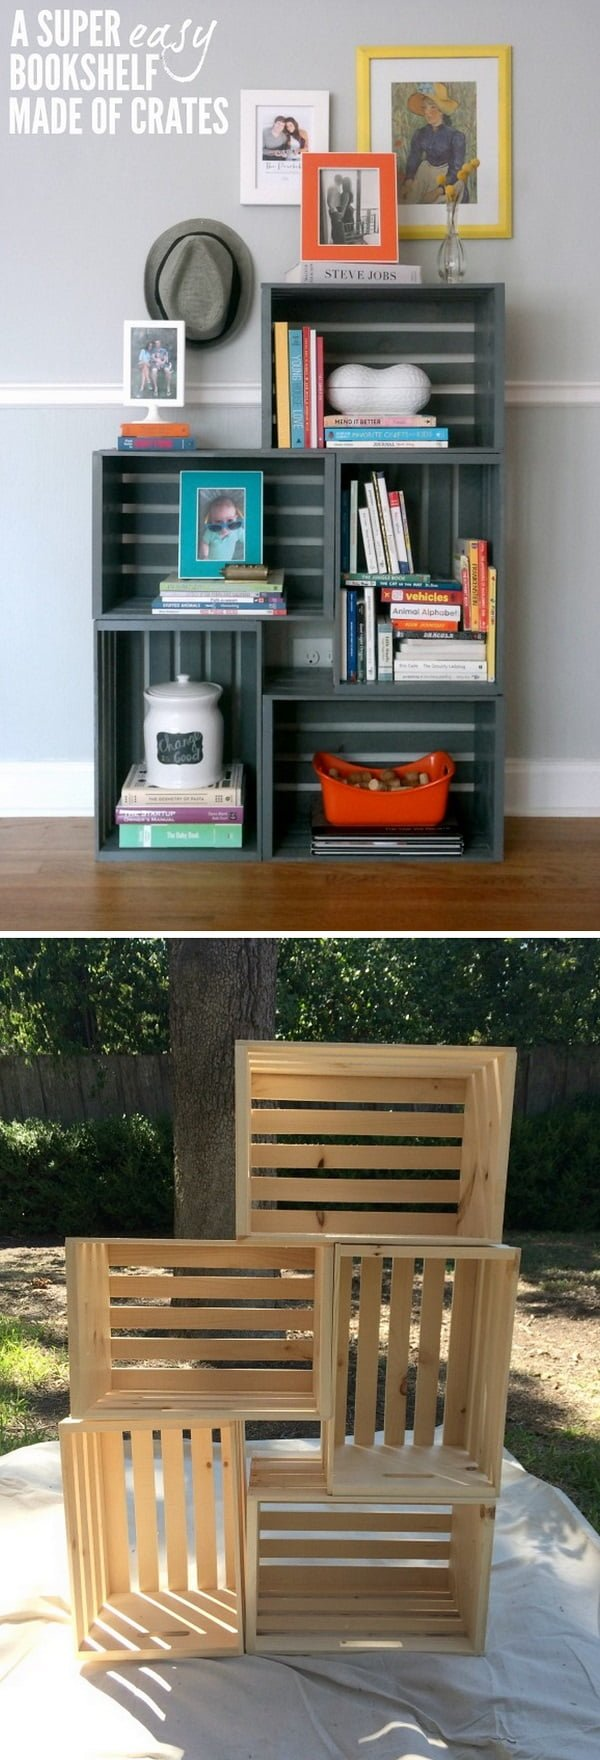 22 Amazing Diy Bookshelf Ideas With Plans You Can Make Easily